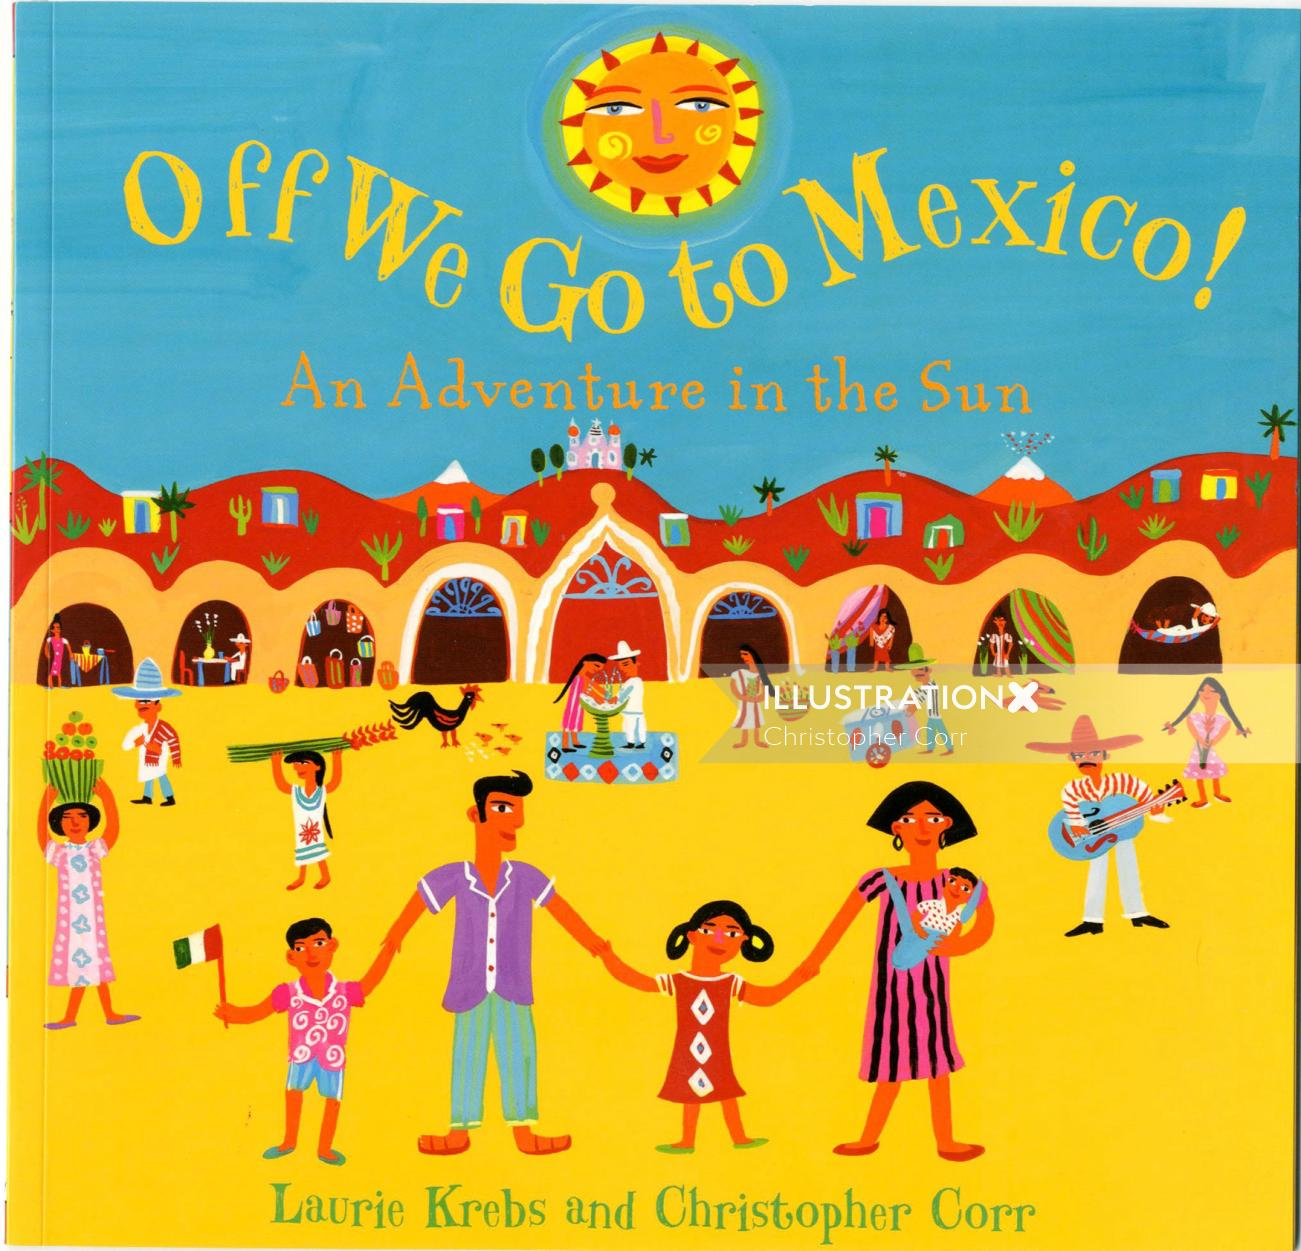 Mexico book cover illustration by Christopher Corr